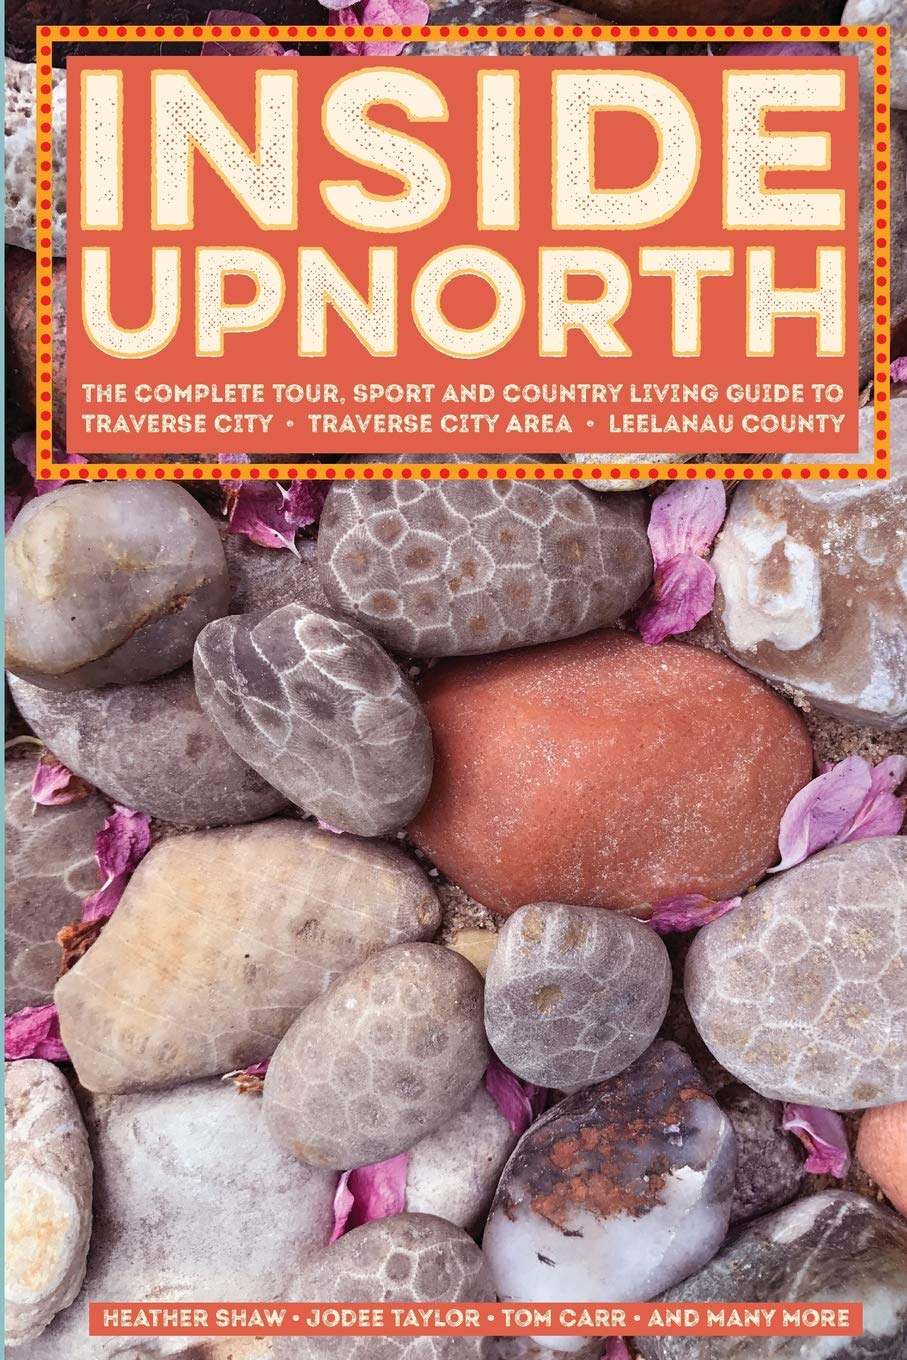 Download Inside Upnorth: The Complete Tour, Sport and Country Living Guide to Traverse City, Traverse City Area and Leelanau County pdf